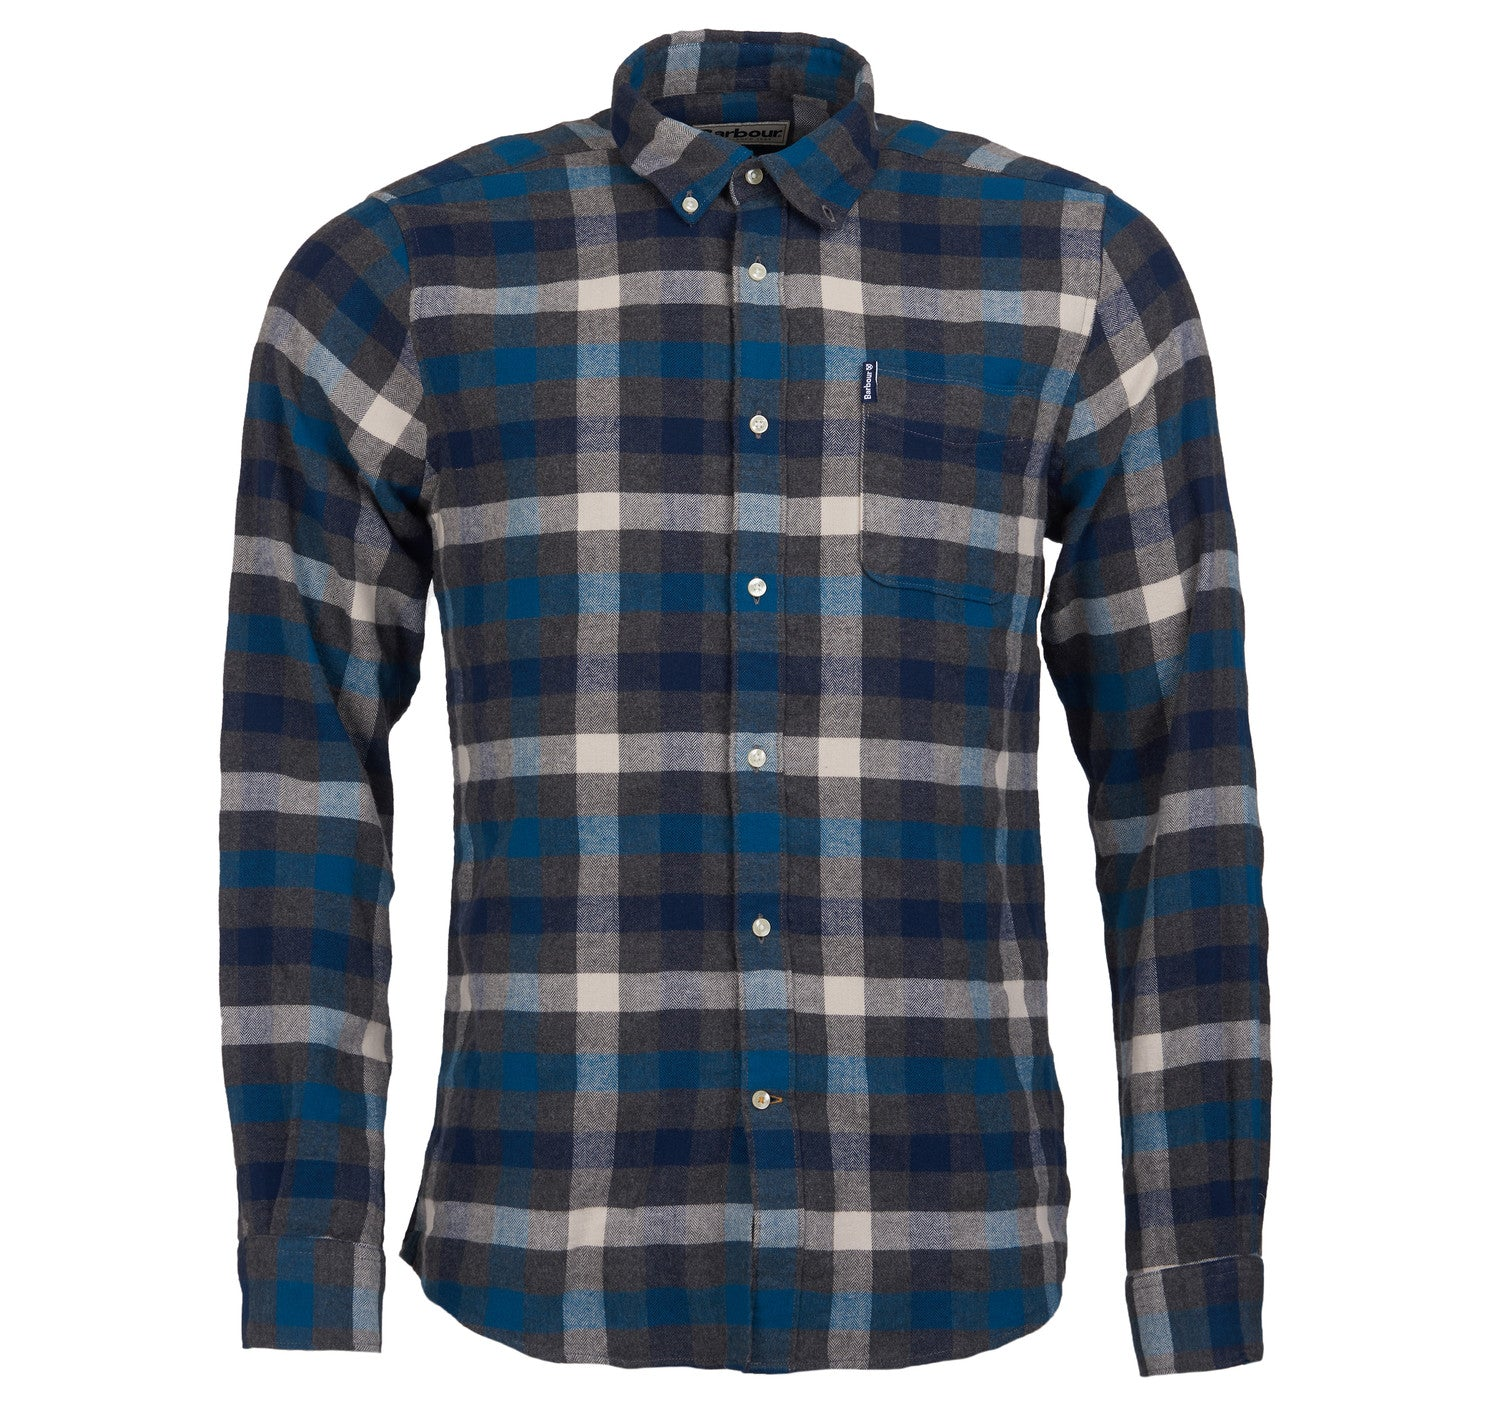 Barbour Country Check 5 Tailored Shirt for Men in Blue